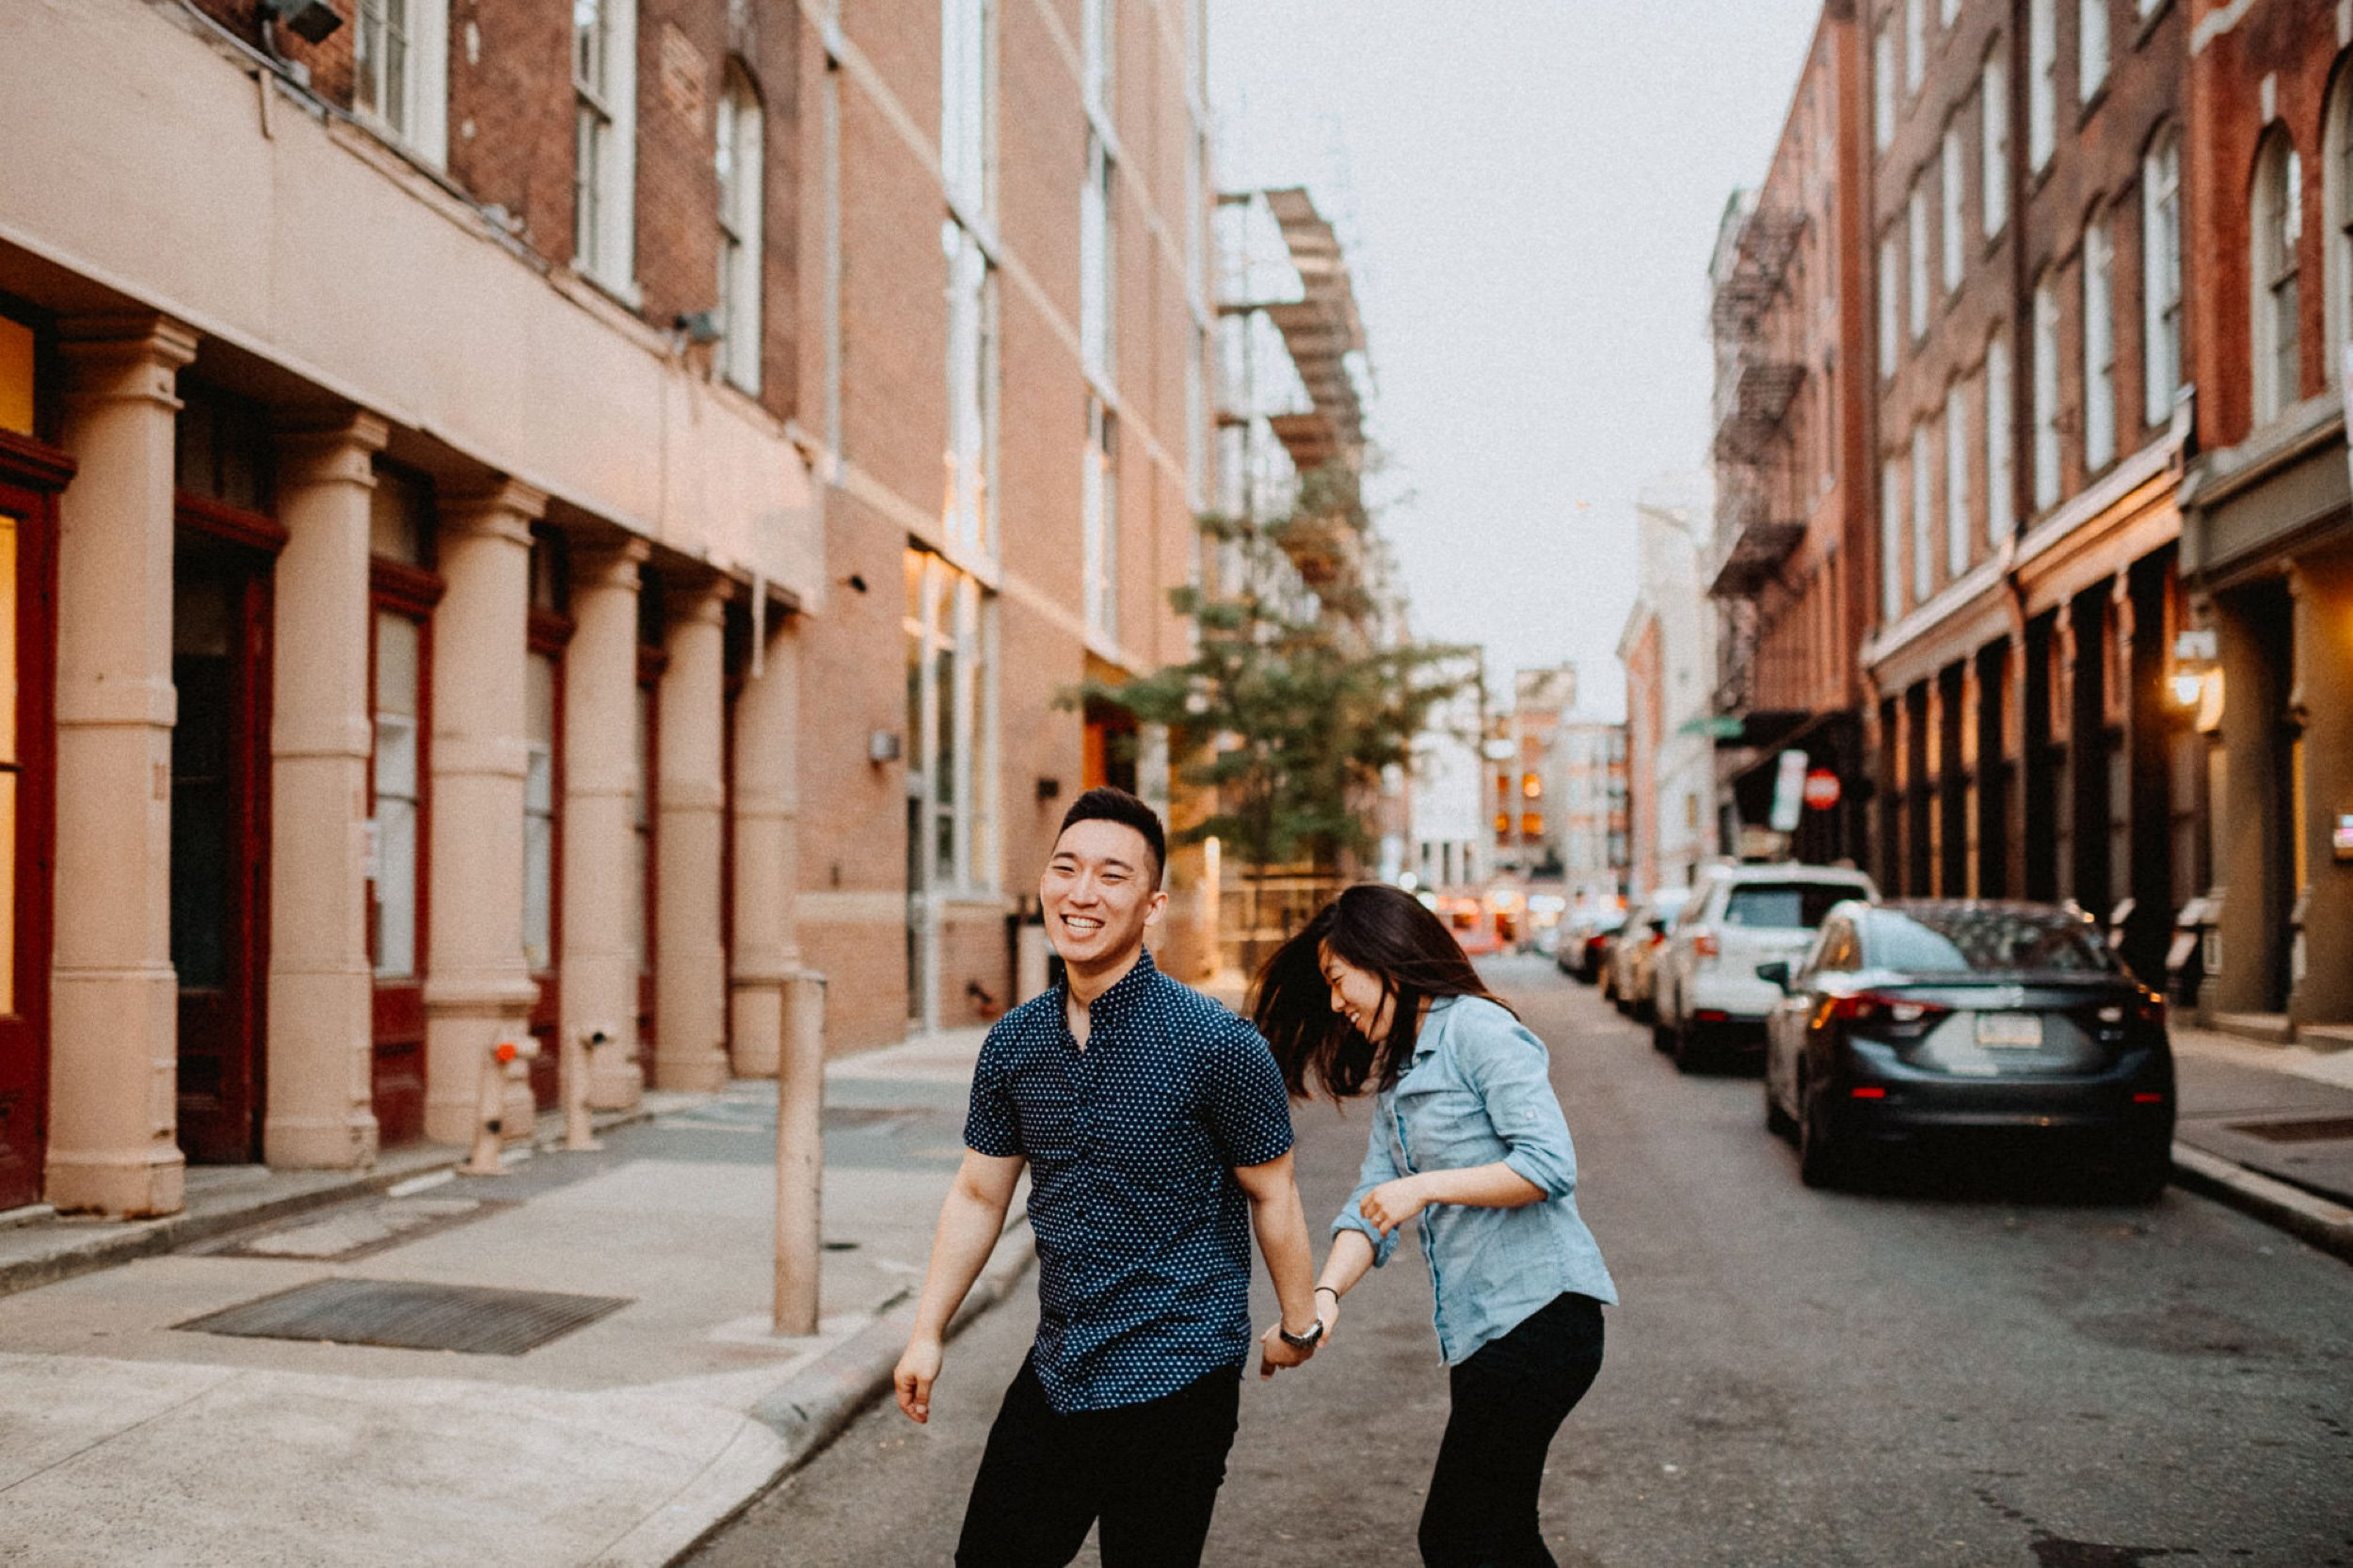 philly_engagement_session-30.jpg